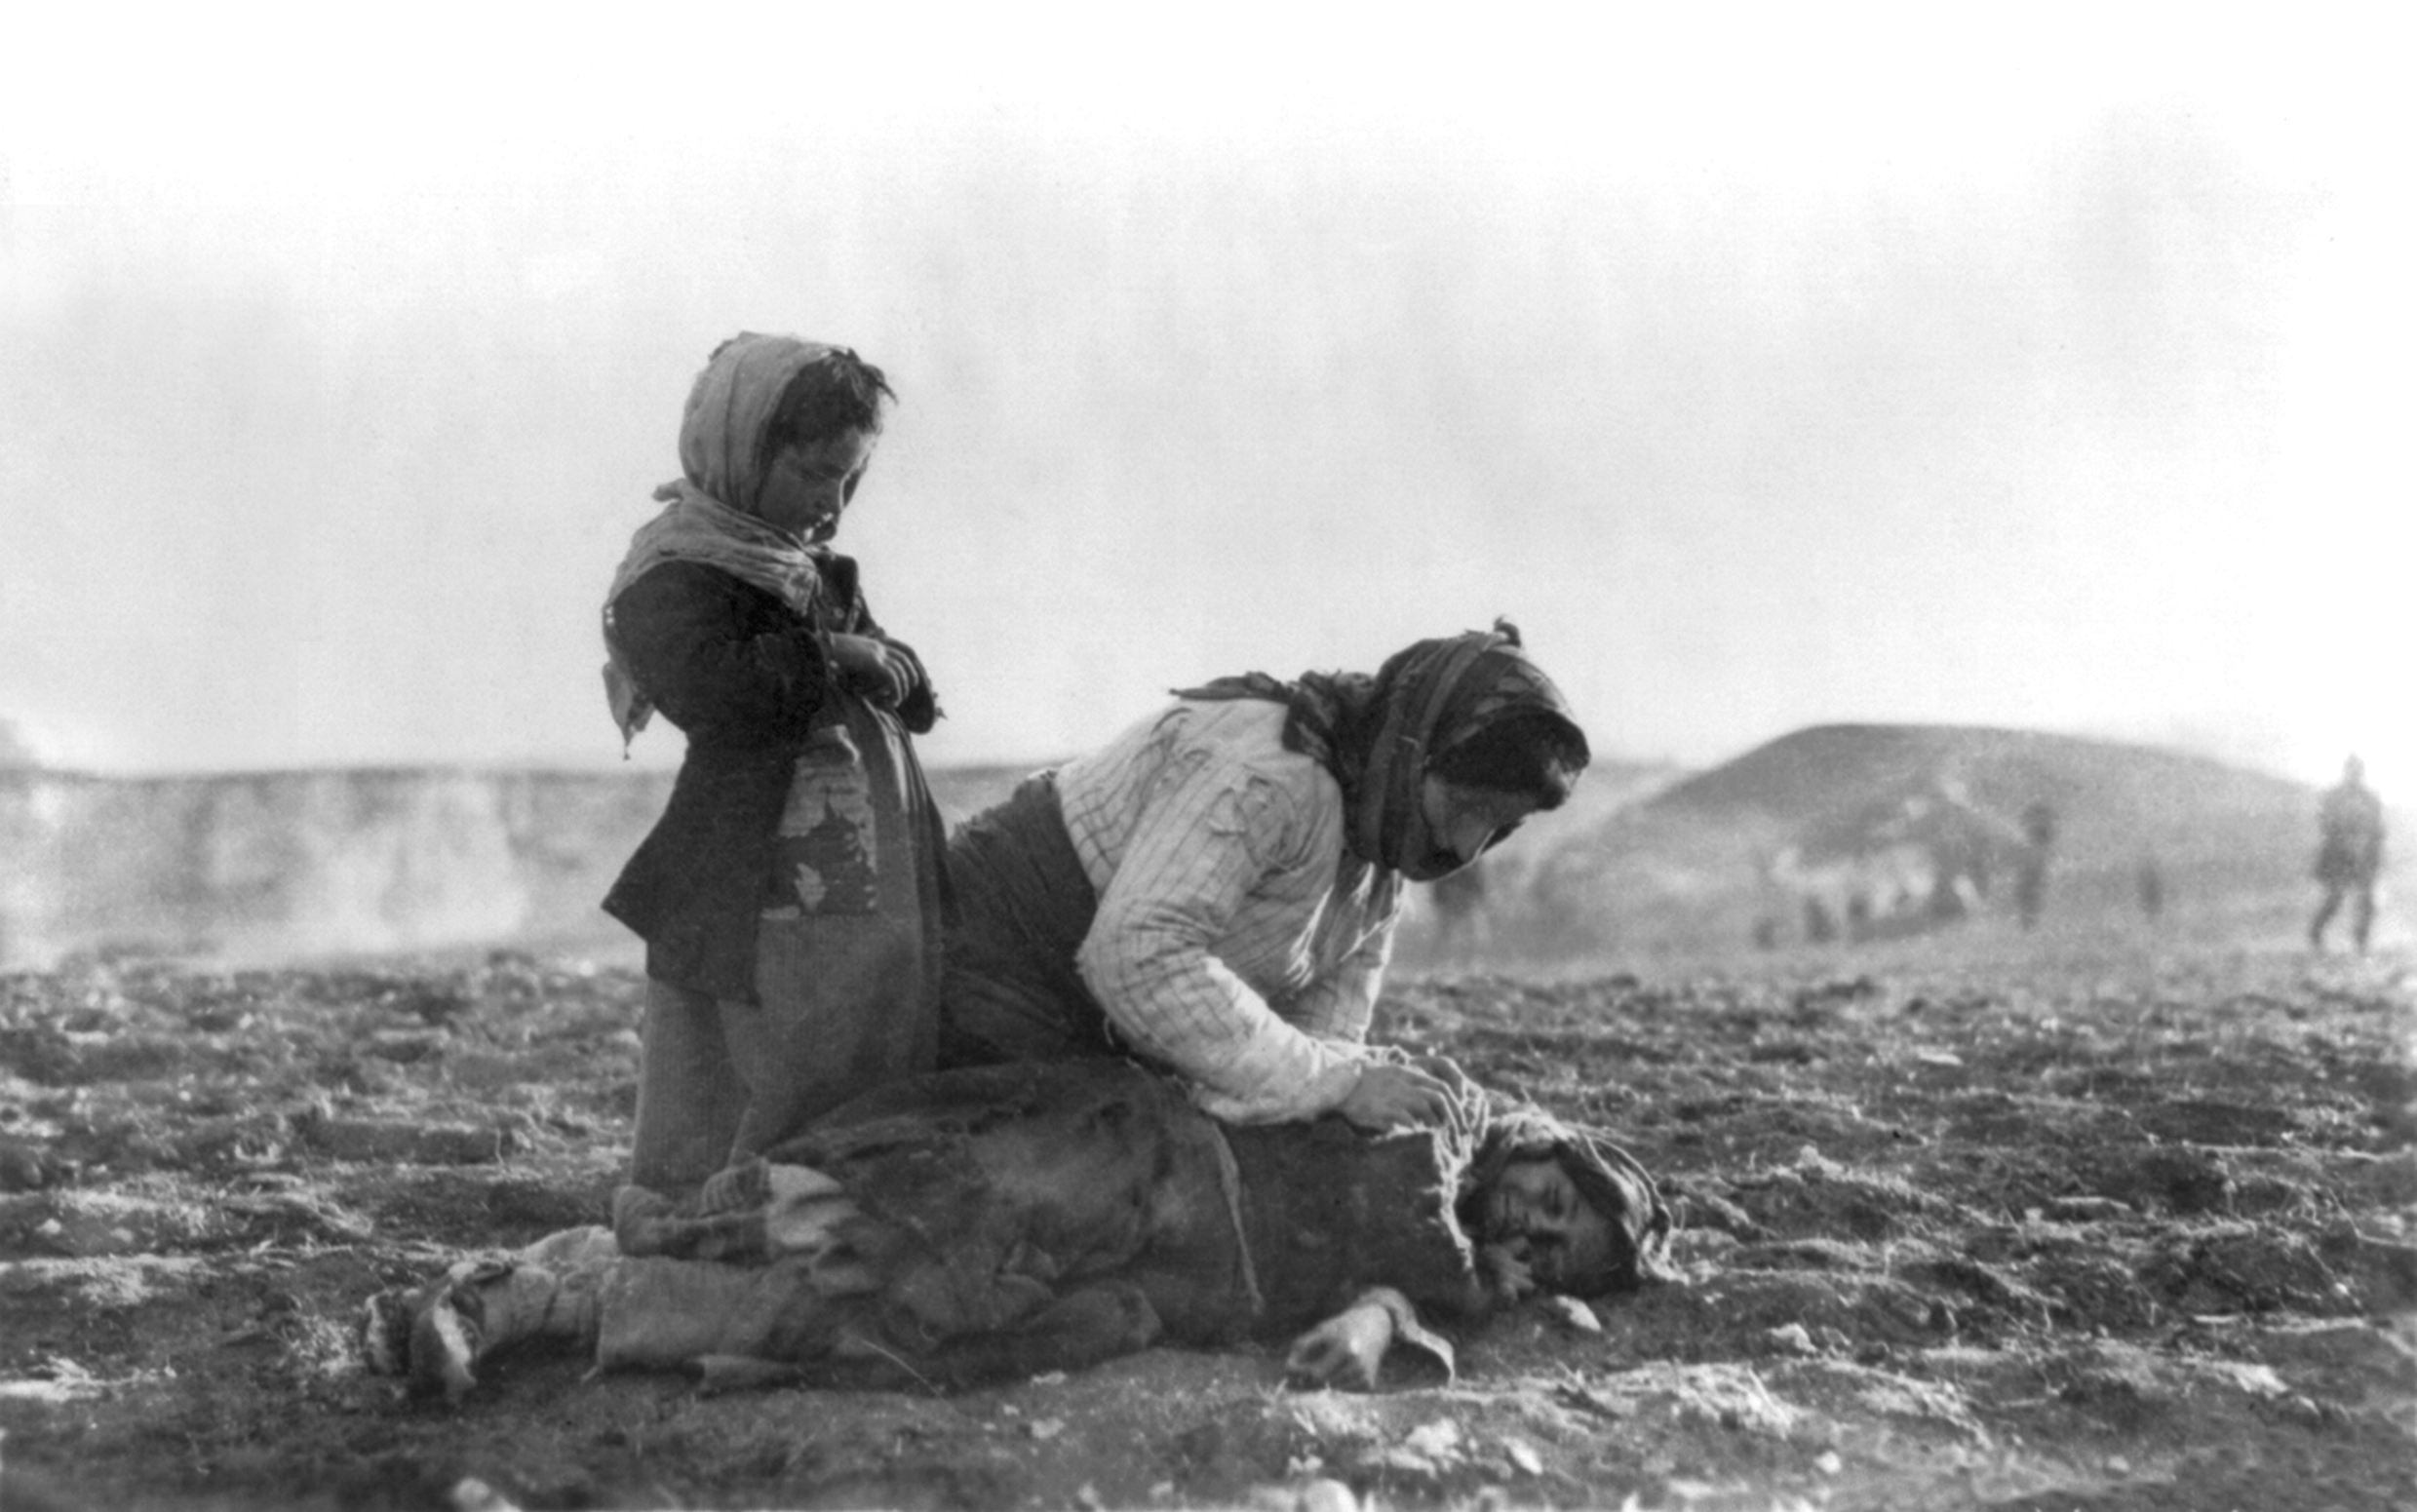 PICTURED:  An Armenian child dead in the fields within sight of help and safety at Aleppo.